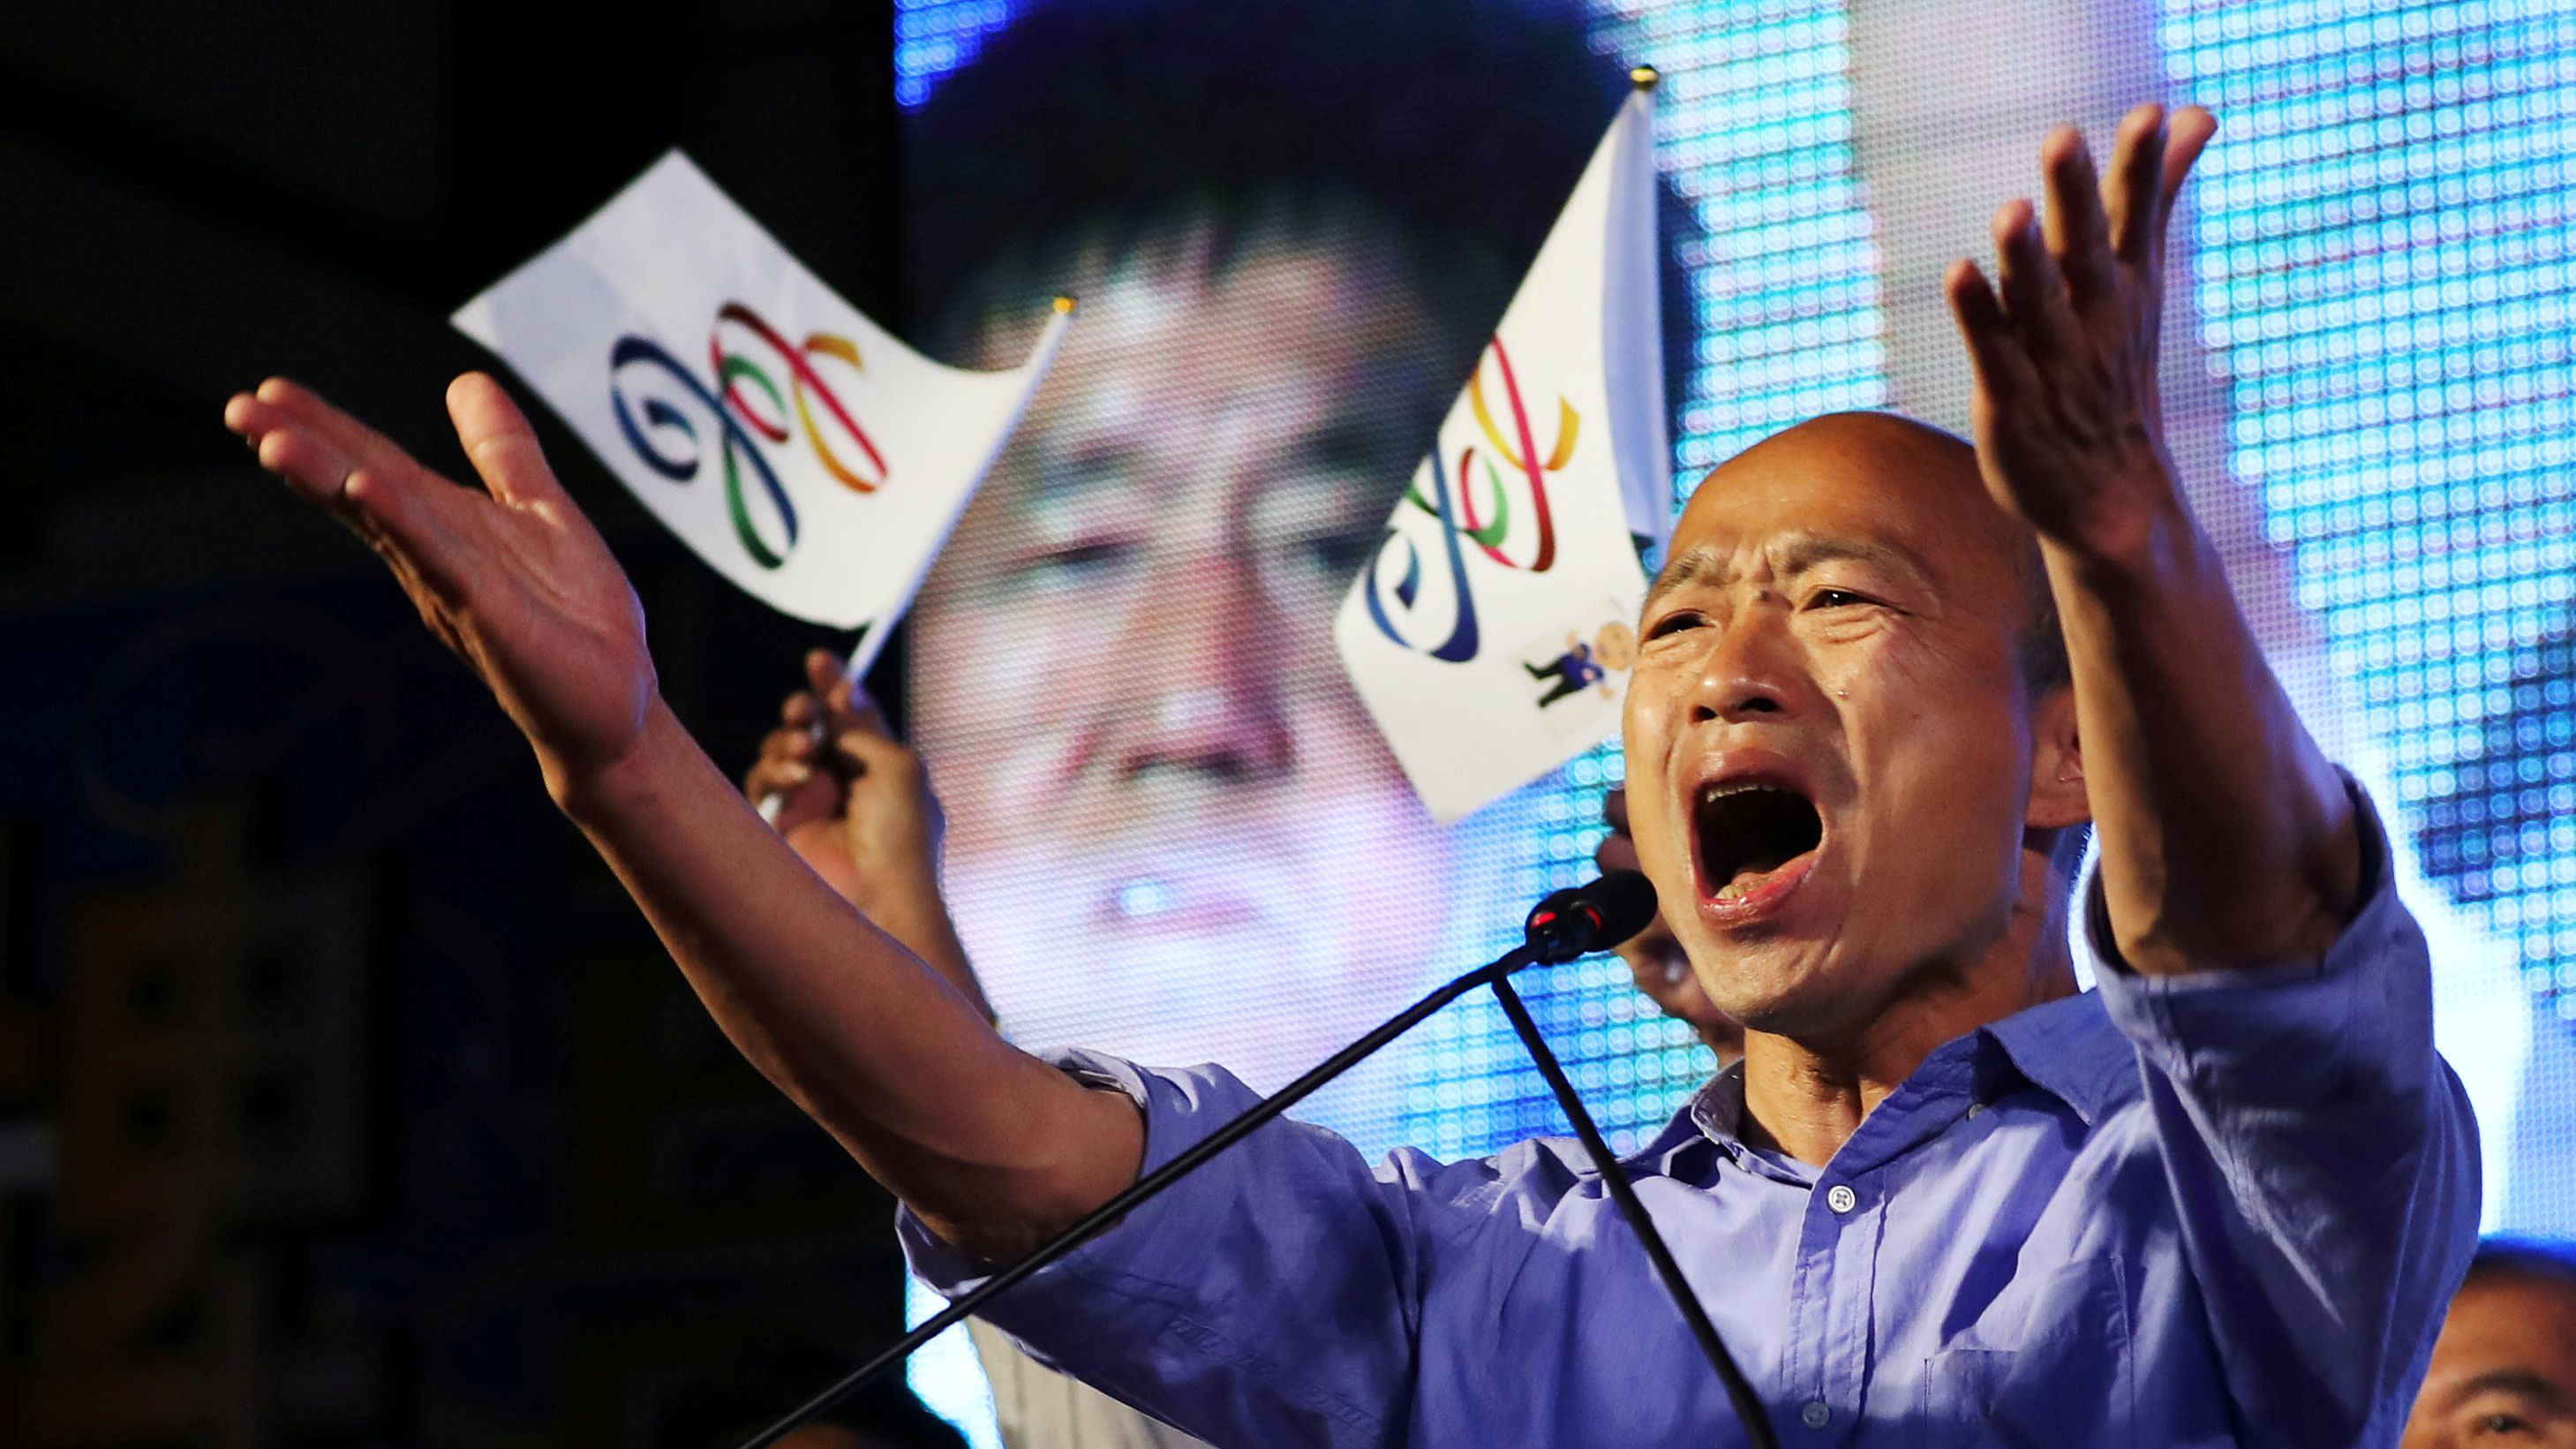 Taiwan's new 'CEO mayor' plays up economic goals over China